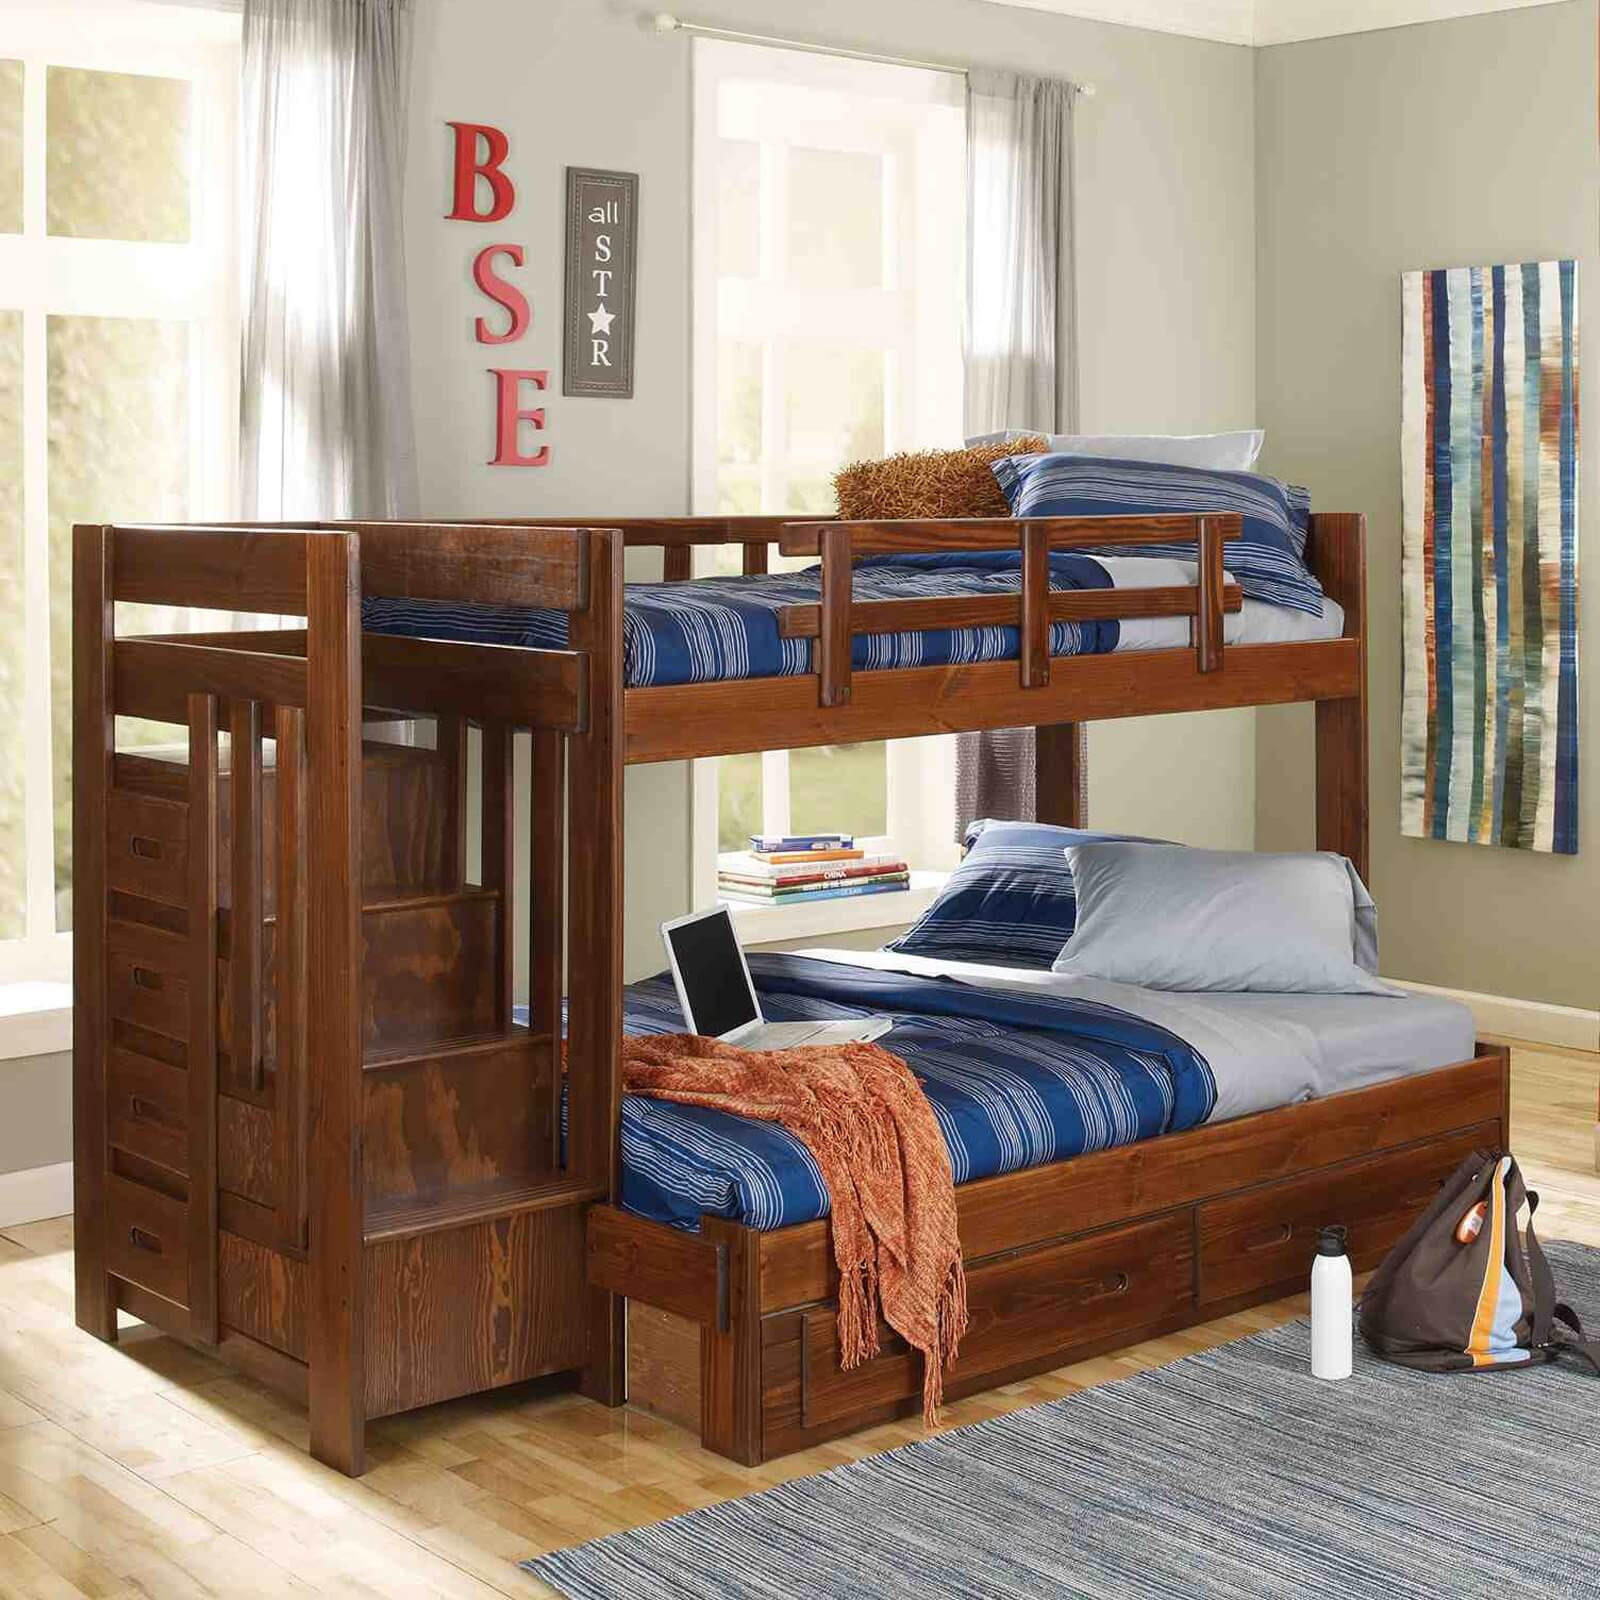 Best ideas about Twin Over Twin Bunk Bed With Stairs . Save or Pin Top 10 Types of Twin over Full Bunk Beds Buying Guide Now.